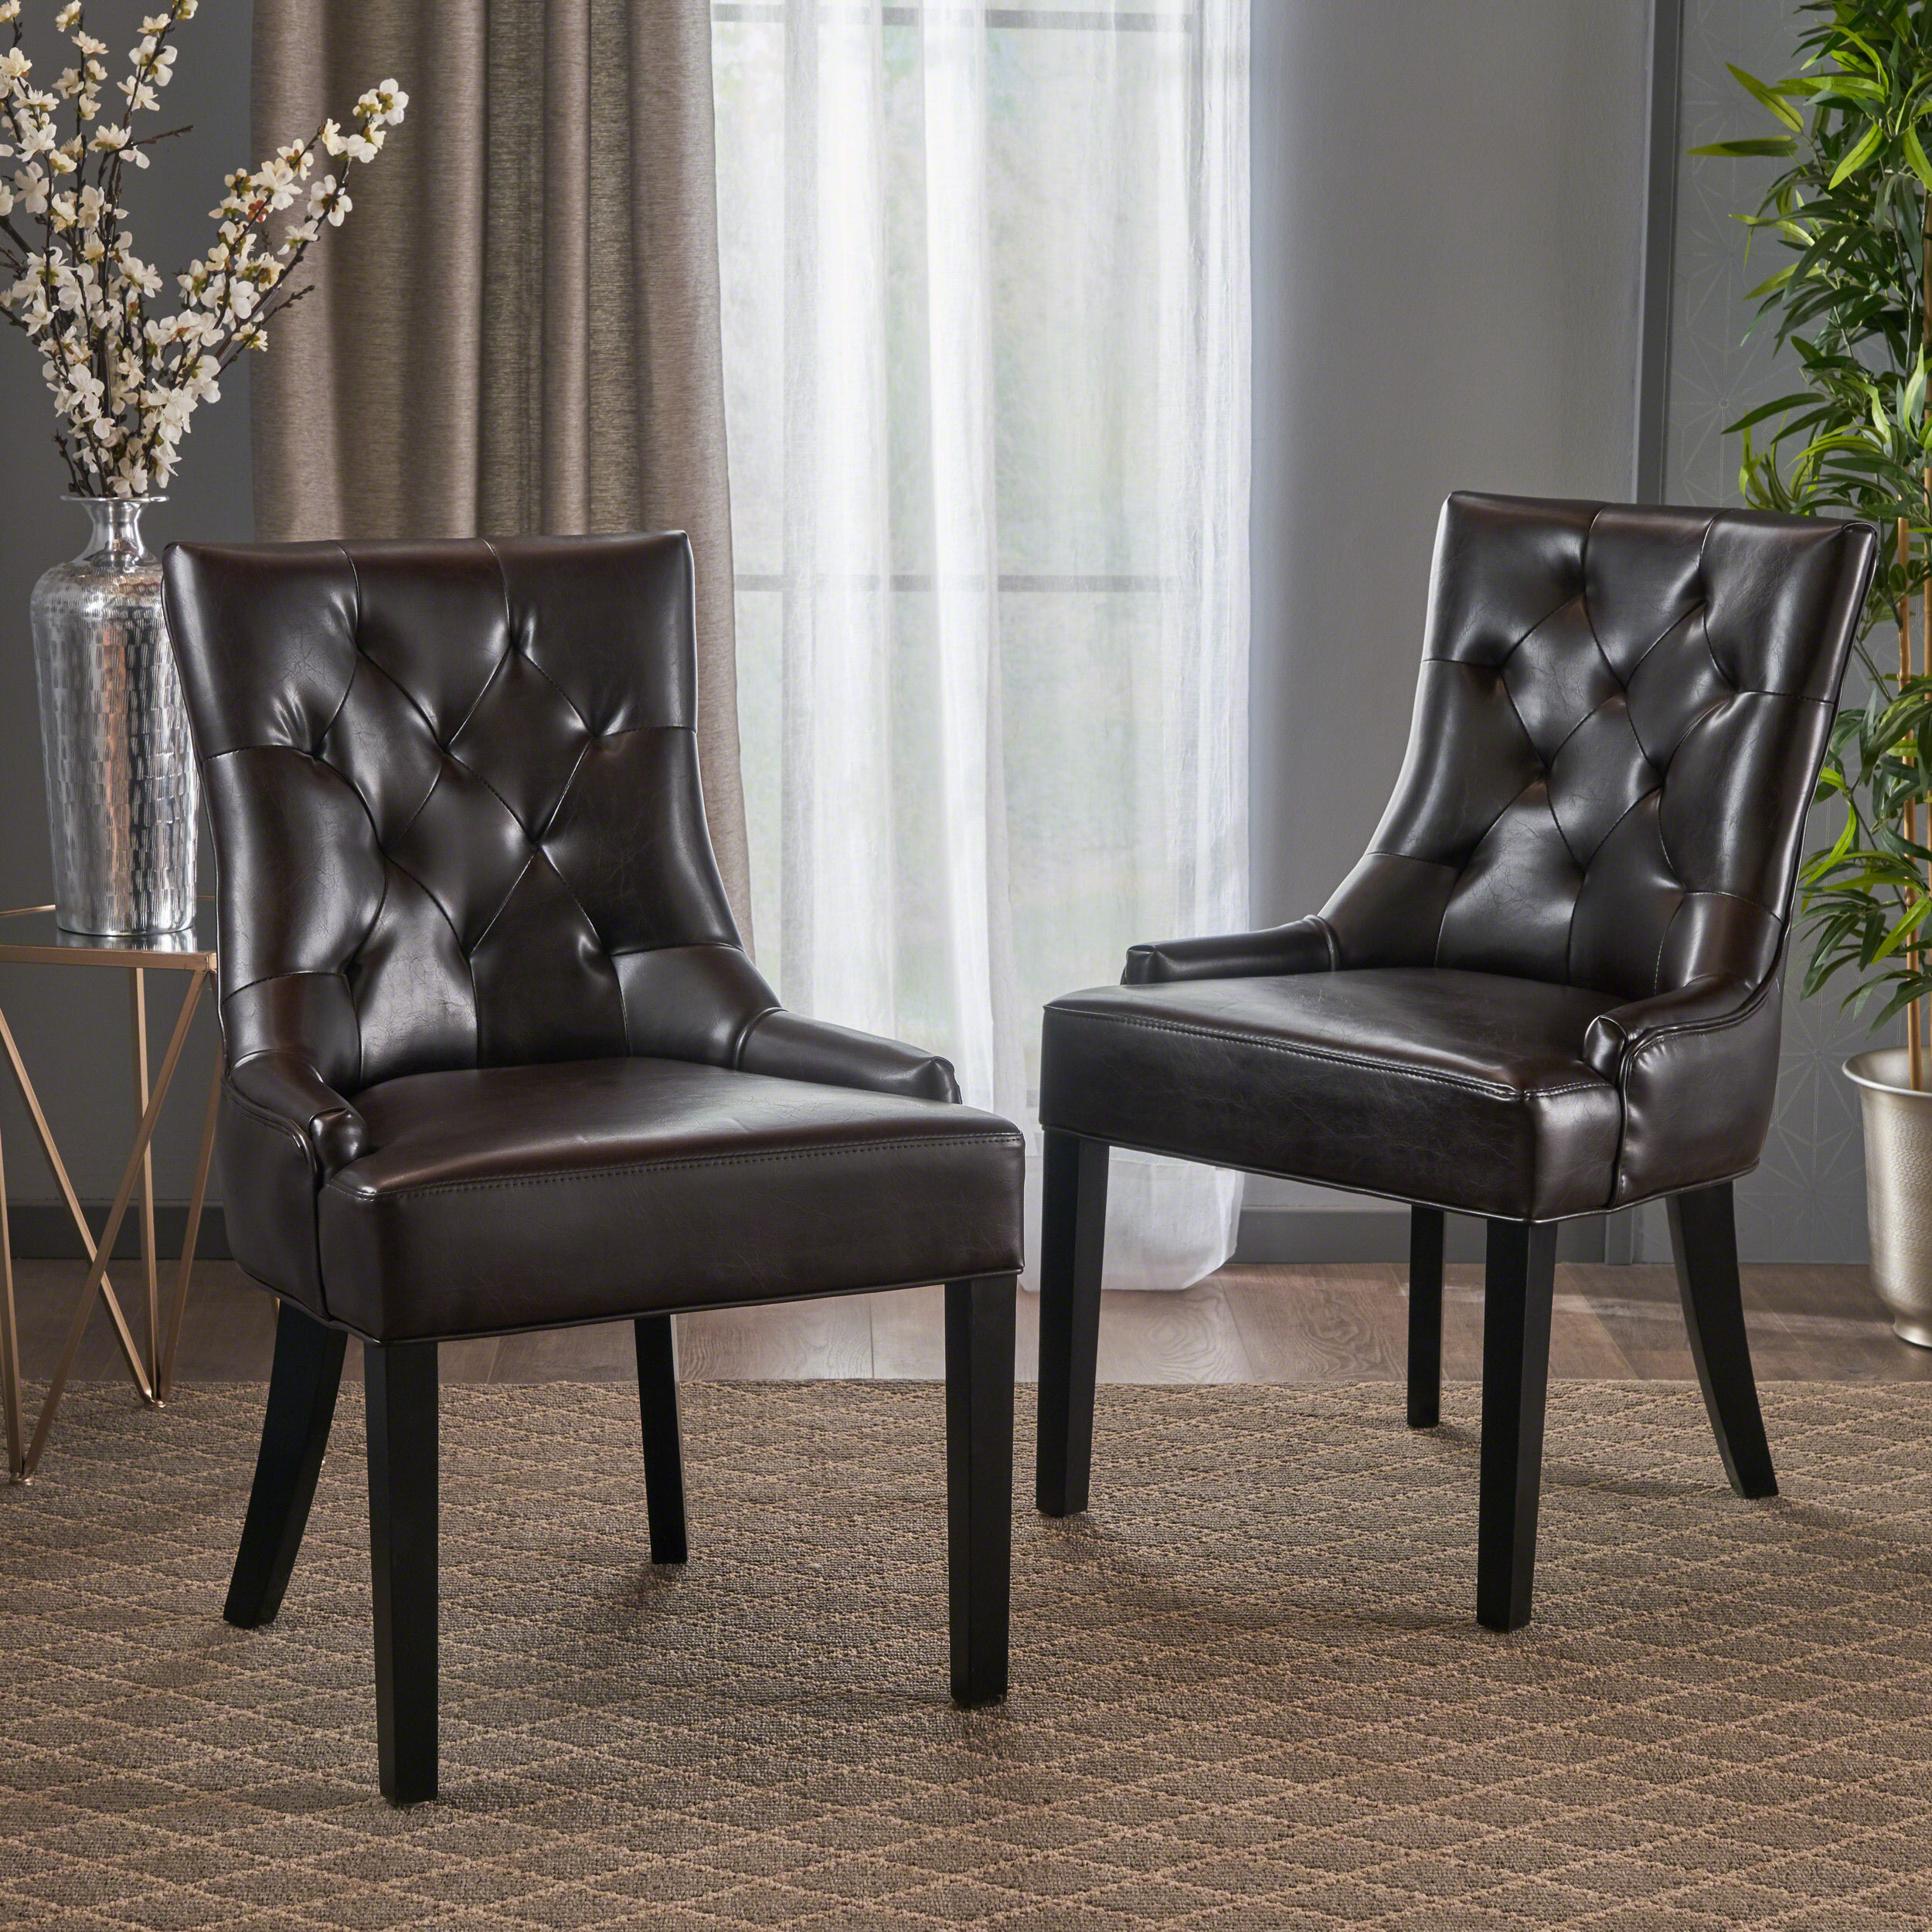 Grandview Tufted Upholstered Side Chair